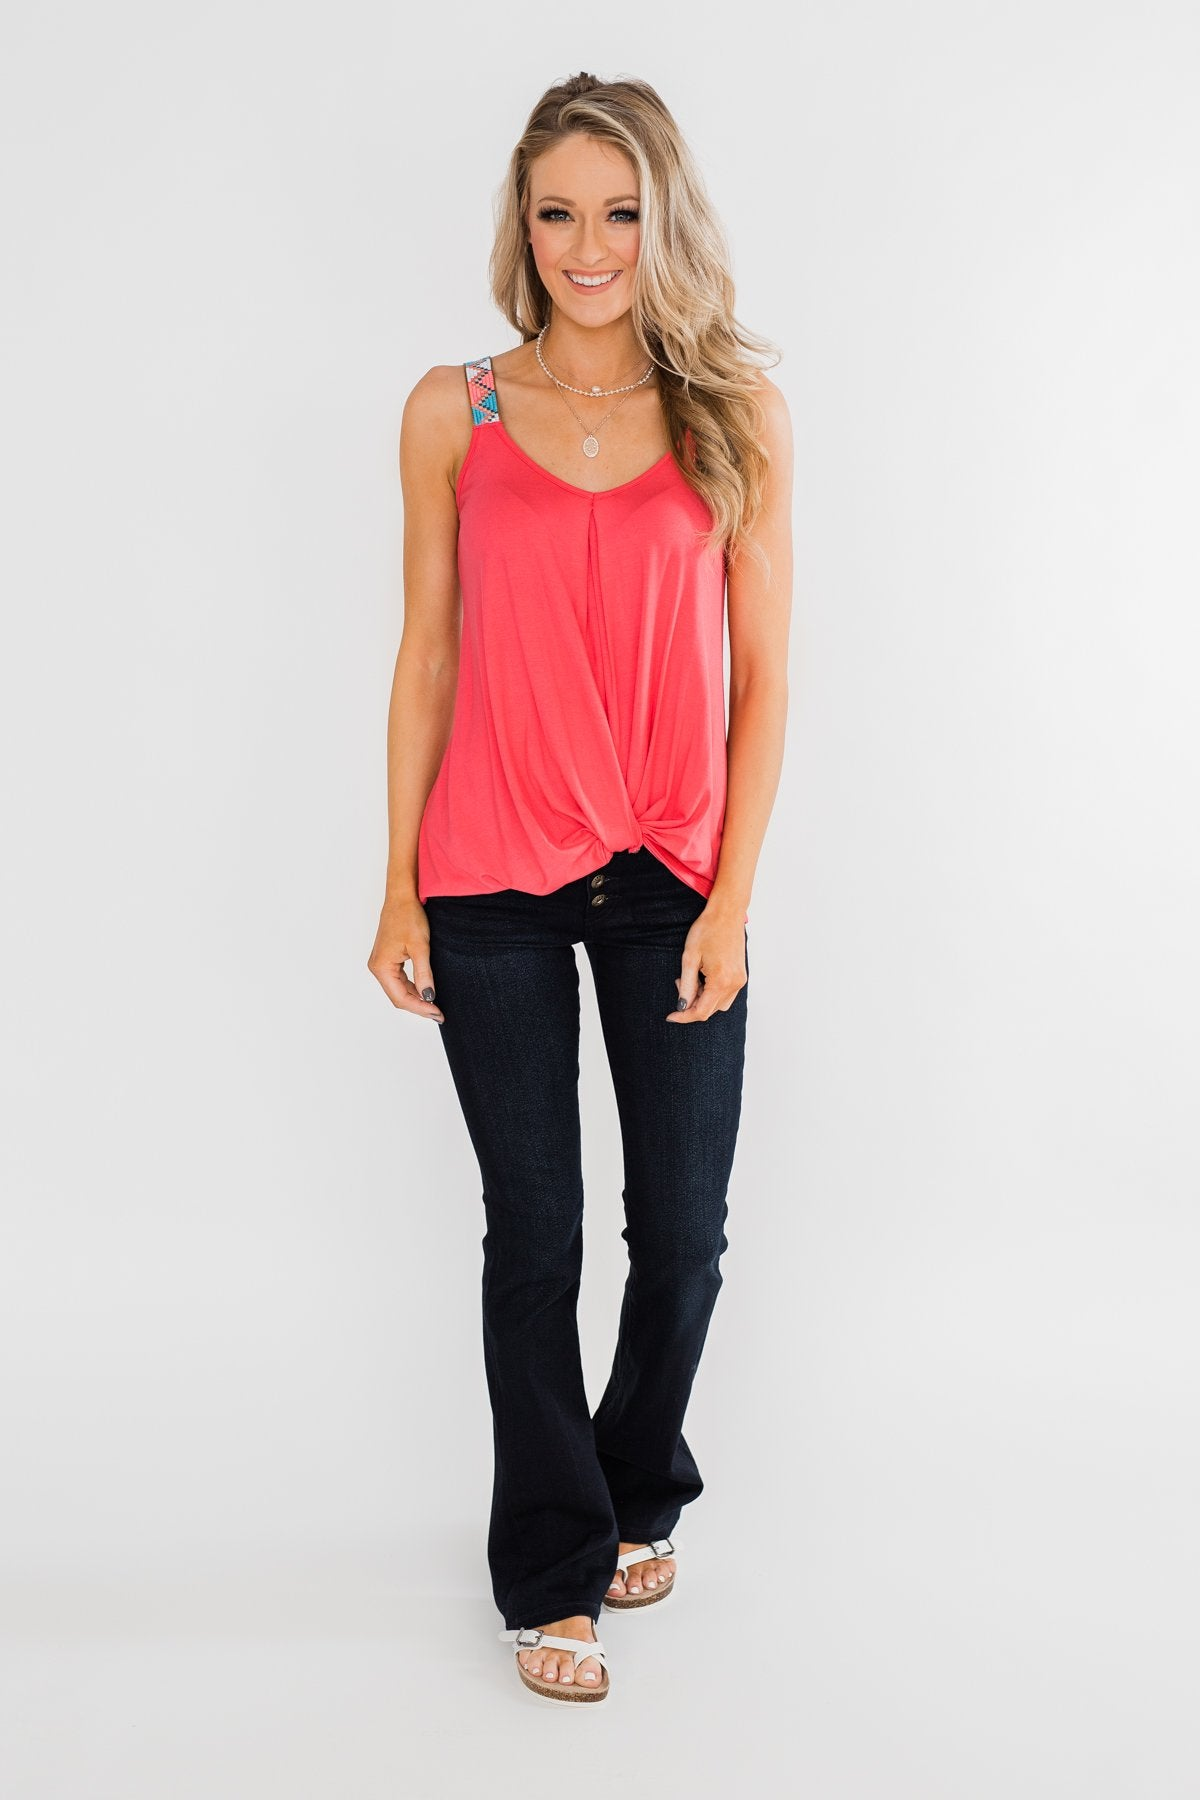 Somewhere Waiting for Me Twist Tank Top- Punch Pink